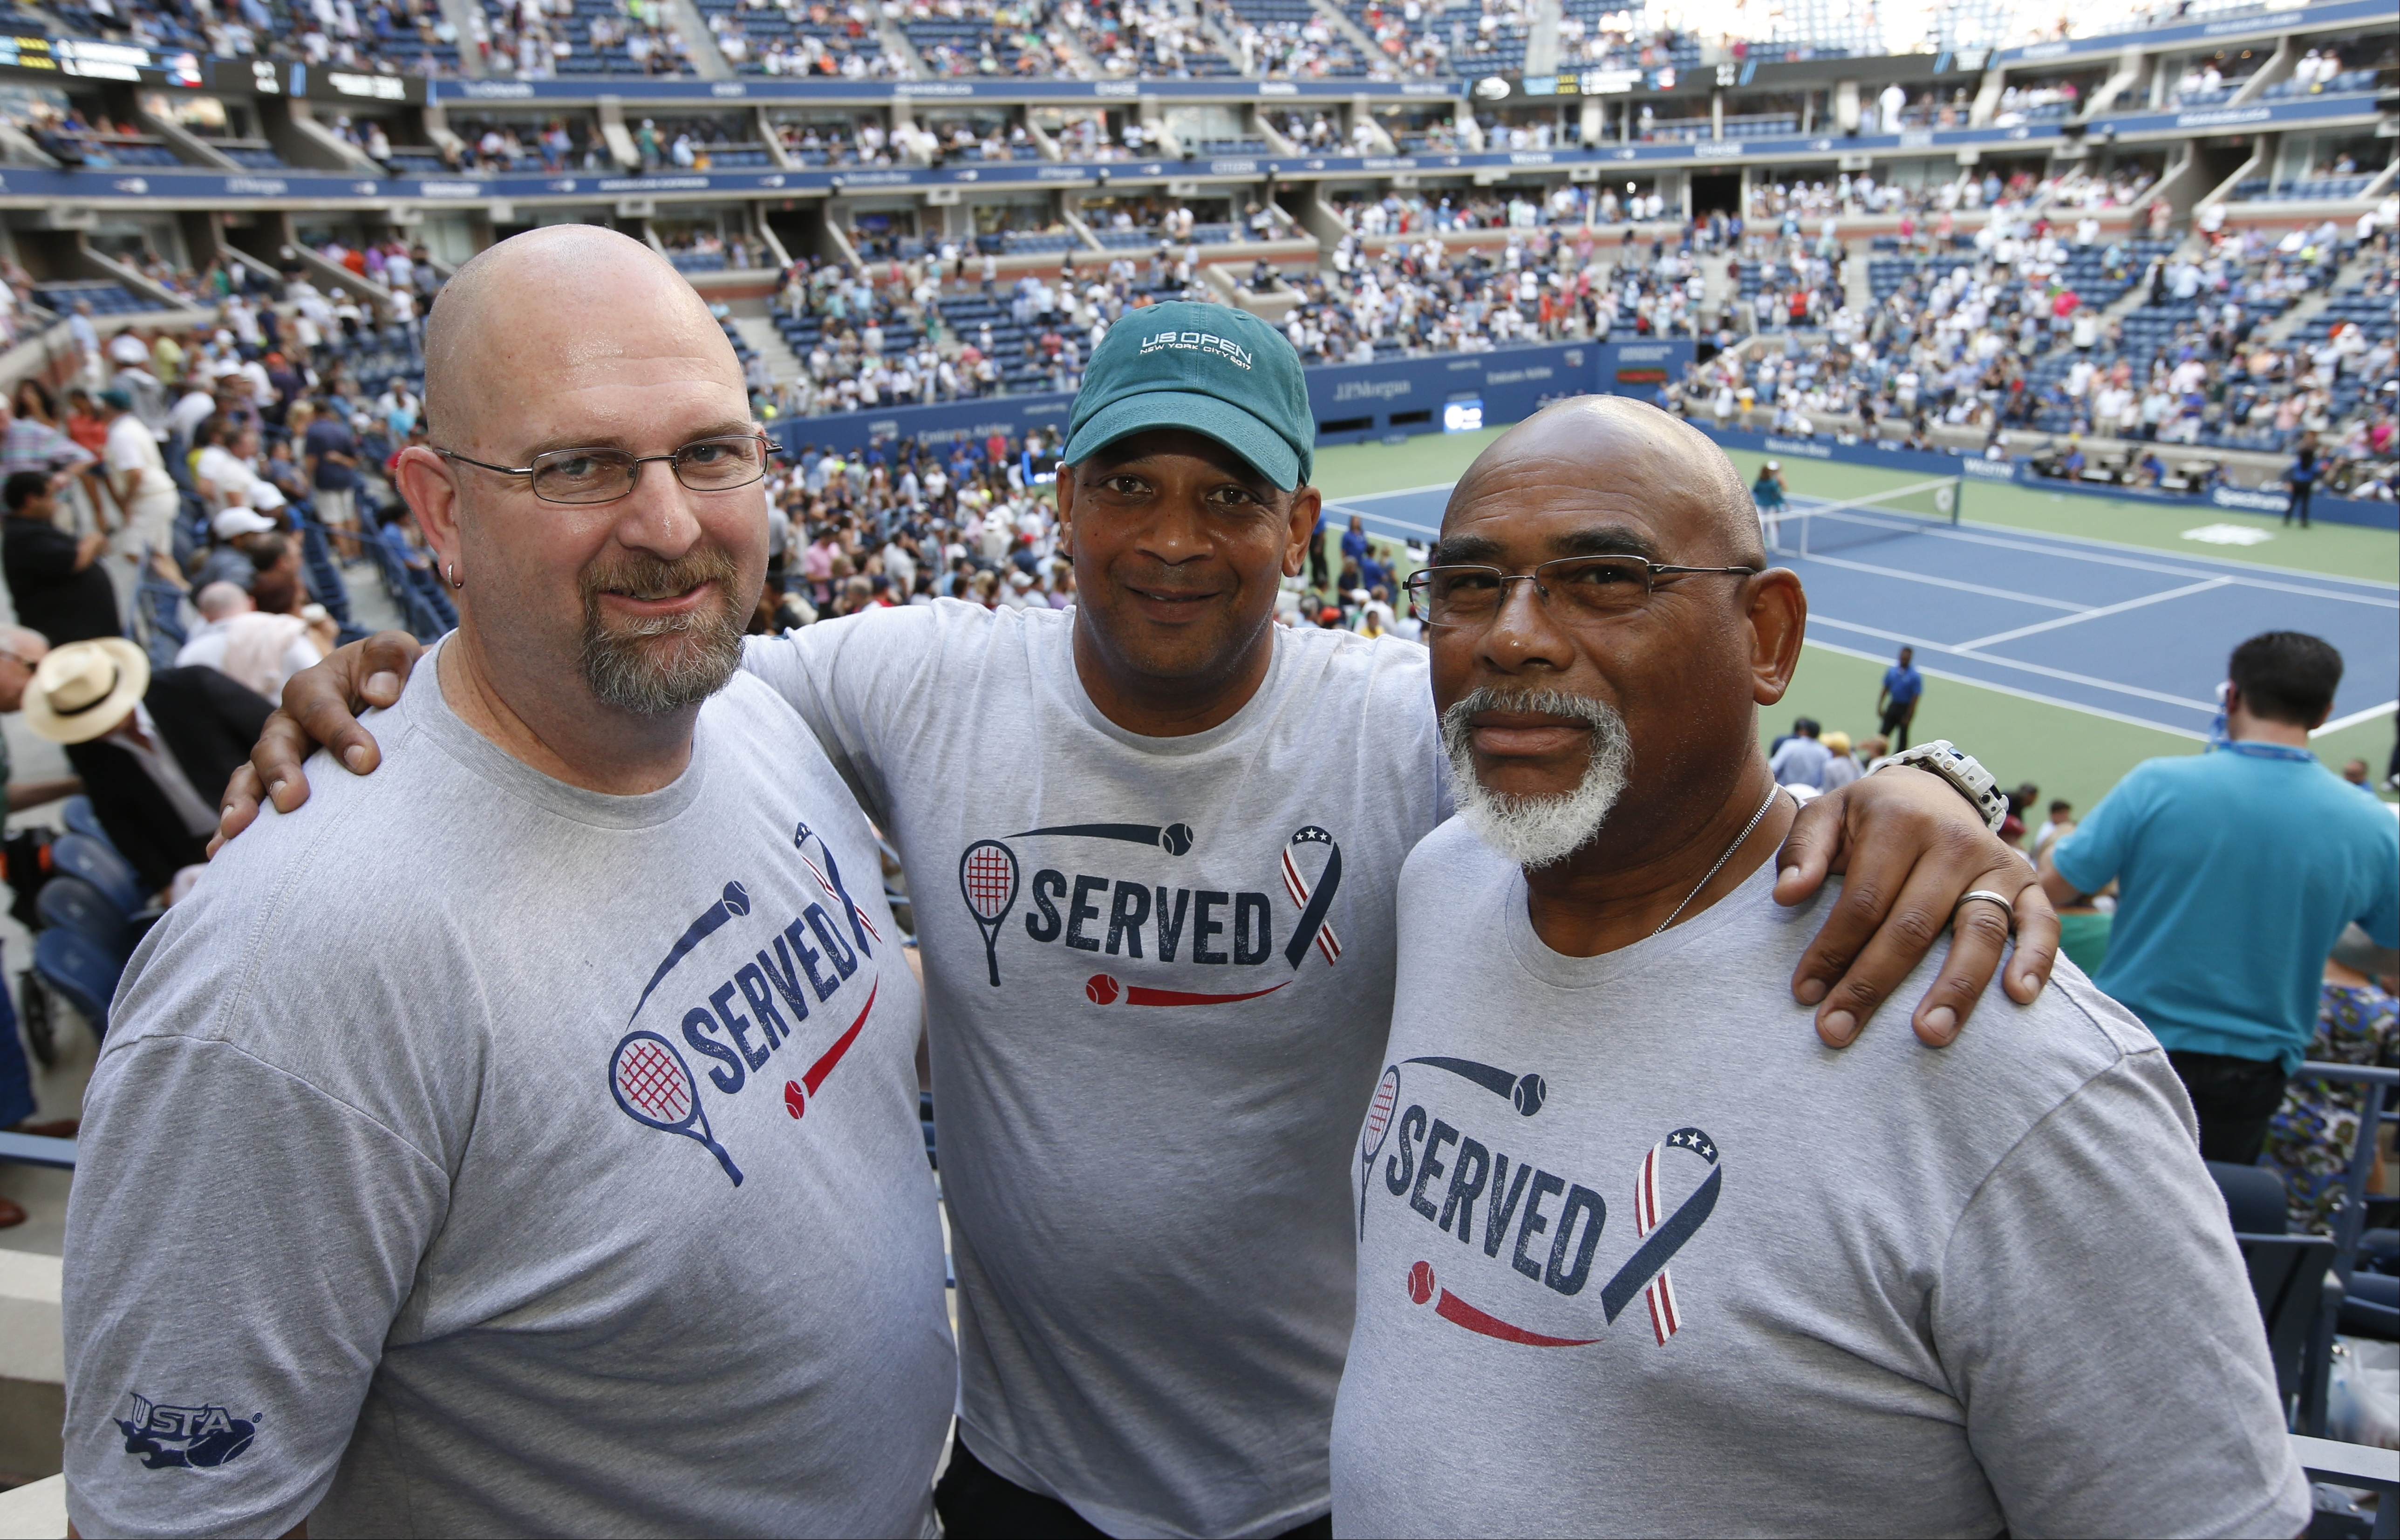 From left, military veterans Marc Spittler, Jon Atkins, and Henry Pruitt, all from Orlando, Fla., pose for a photo during a break in play during the fourth round of the U.S. Open tennis tournament, Monday, Sept. 4, 2017, in New York. (AP Photo/Jason Decro